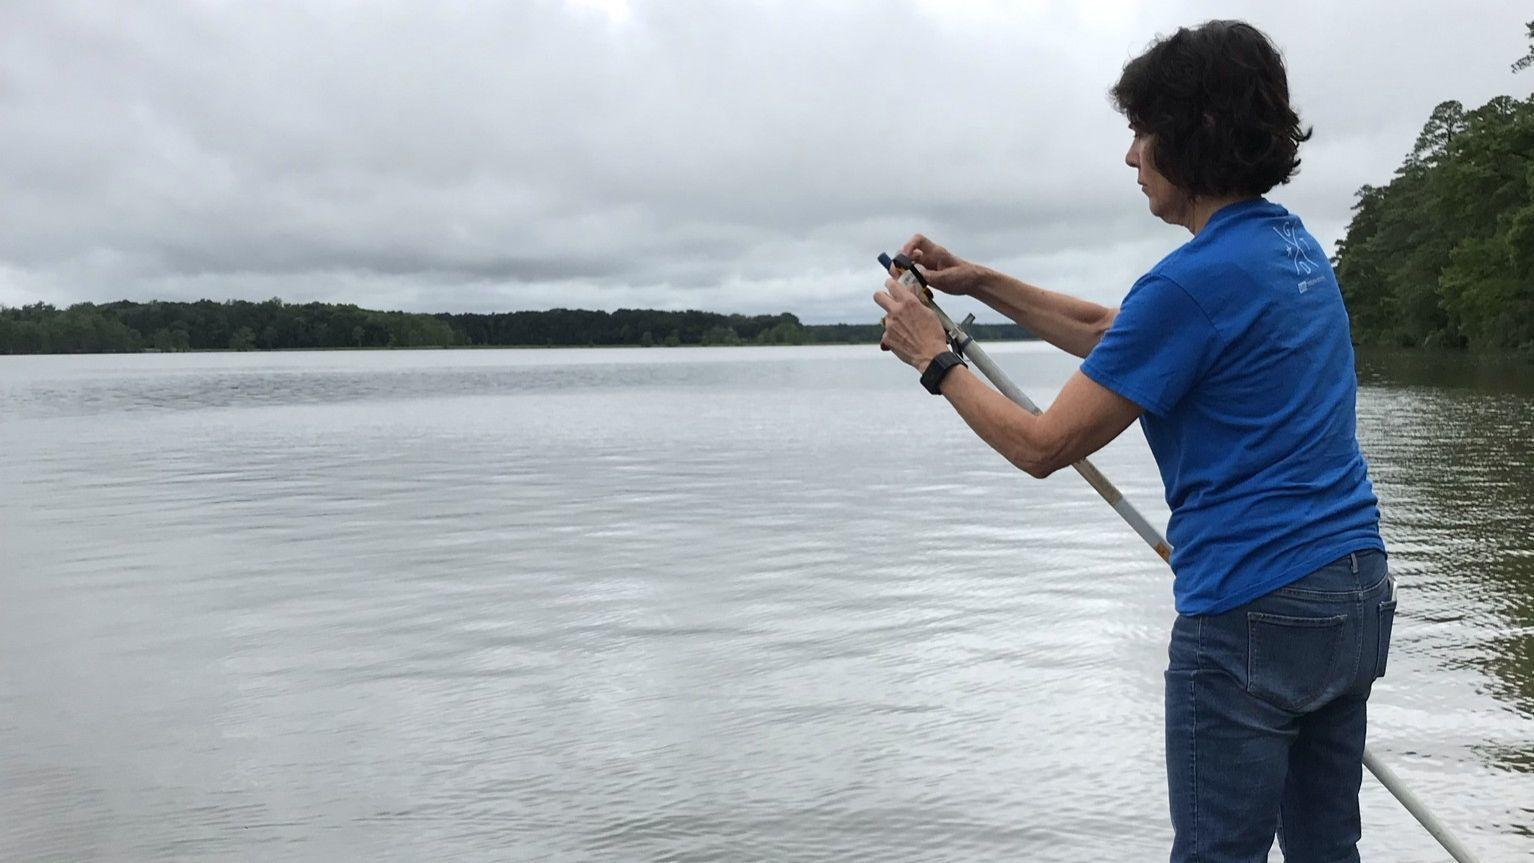 High James River water quality rates ideal for summer recreation at